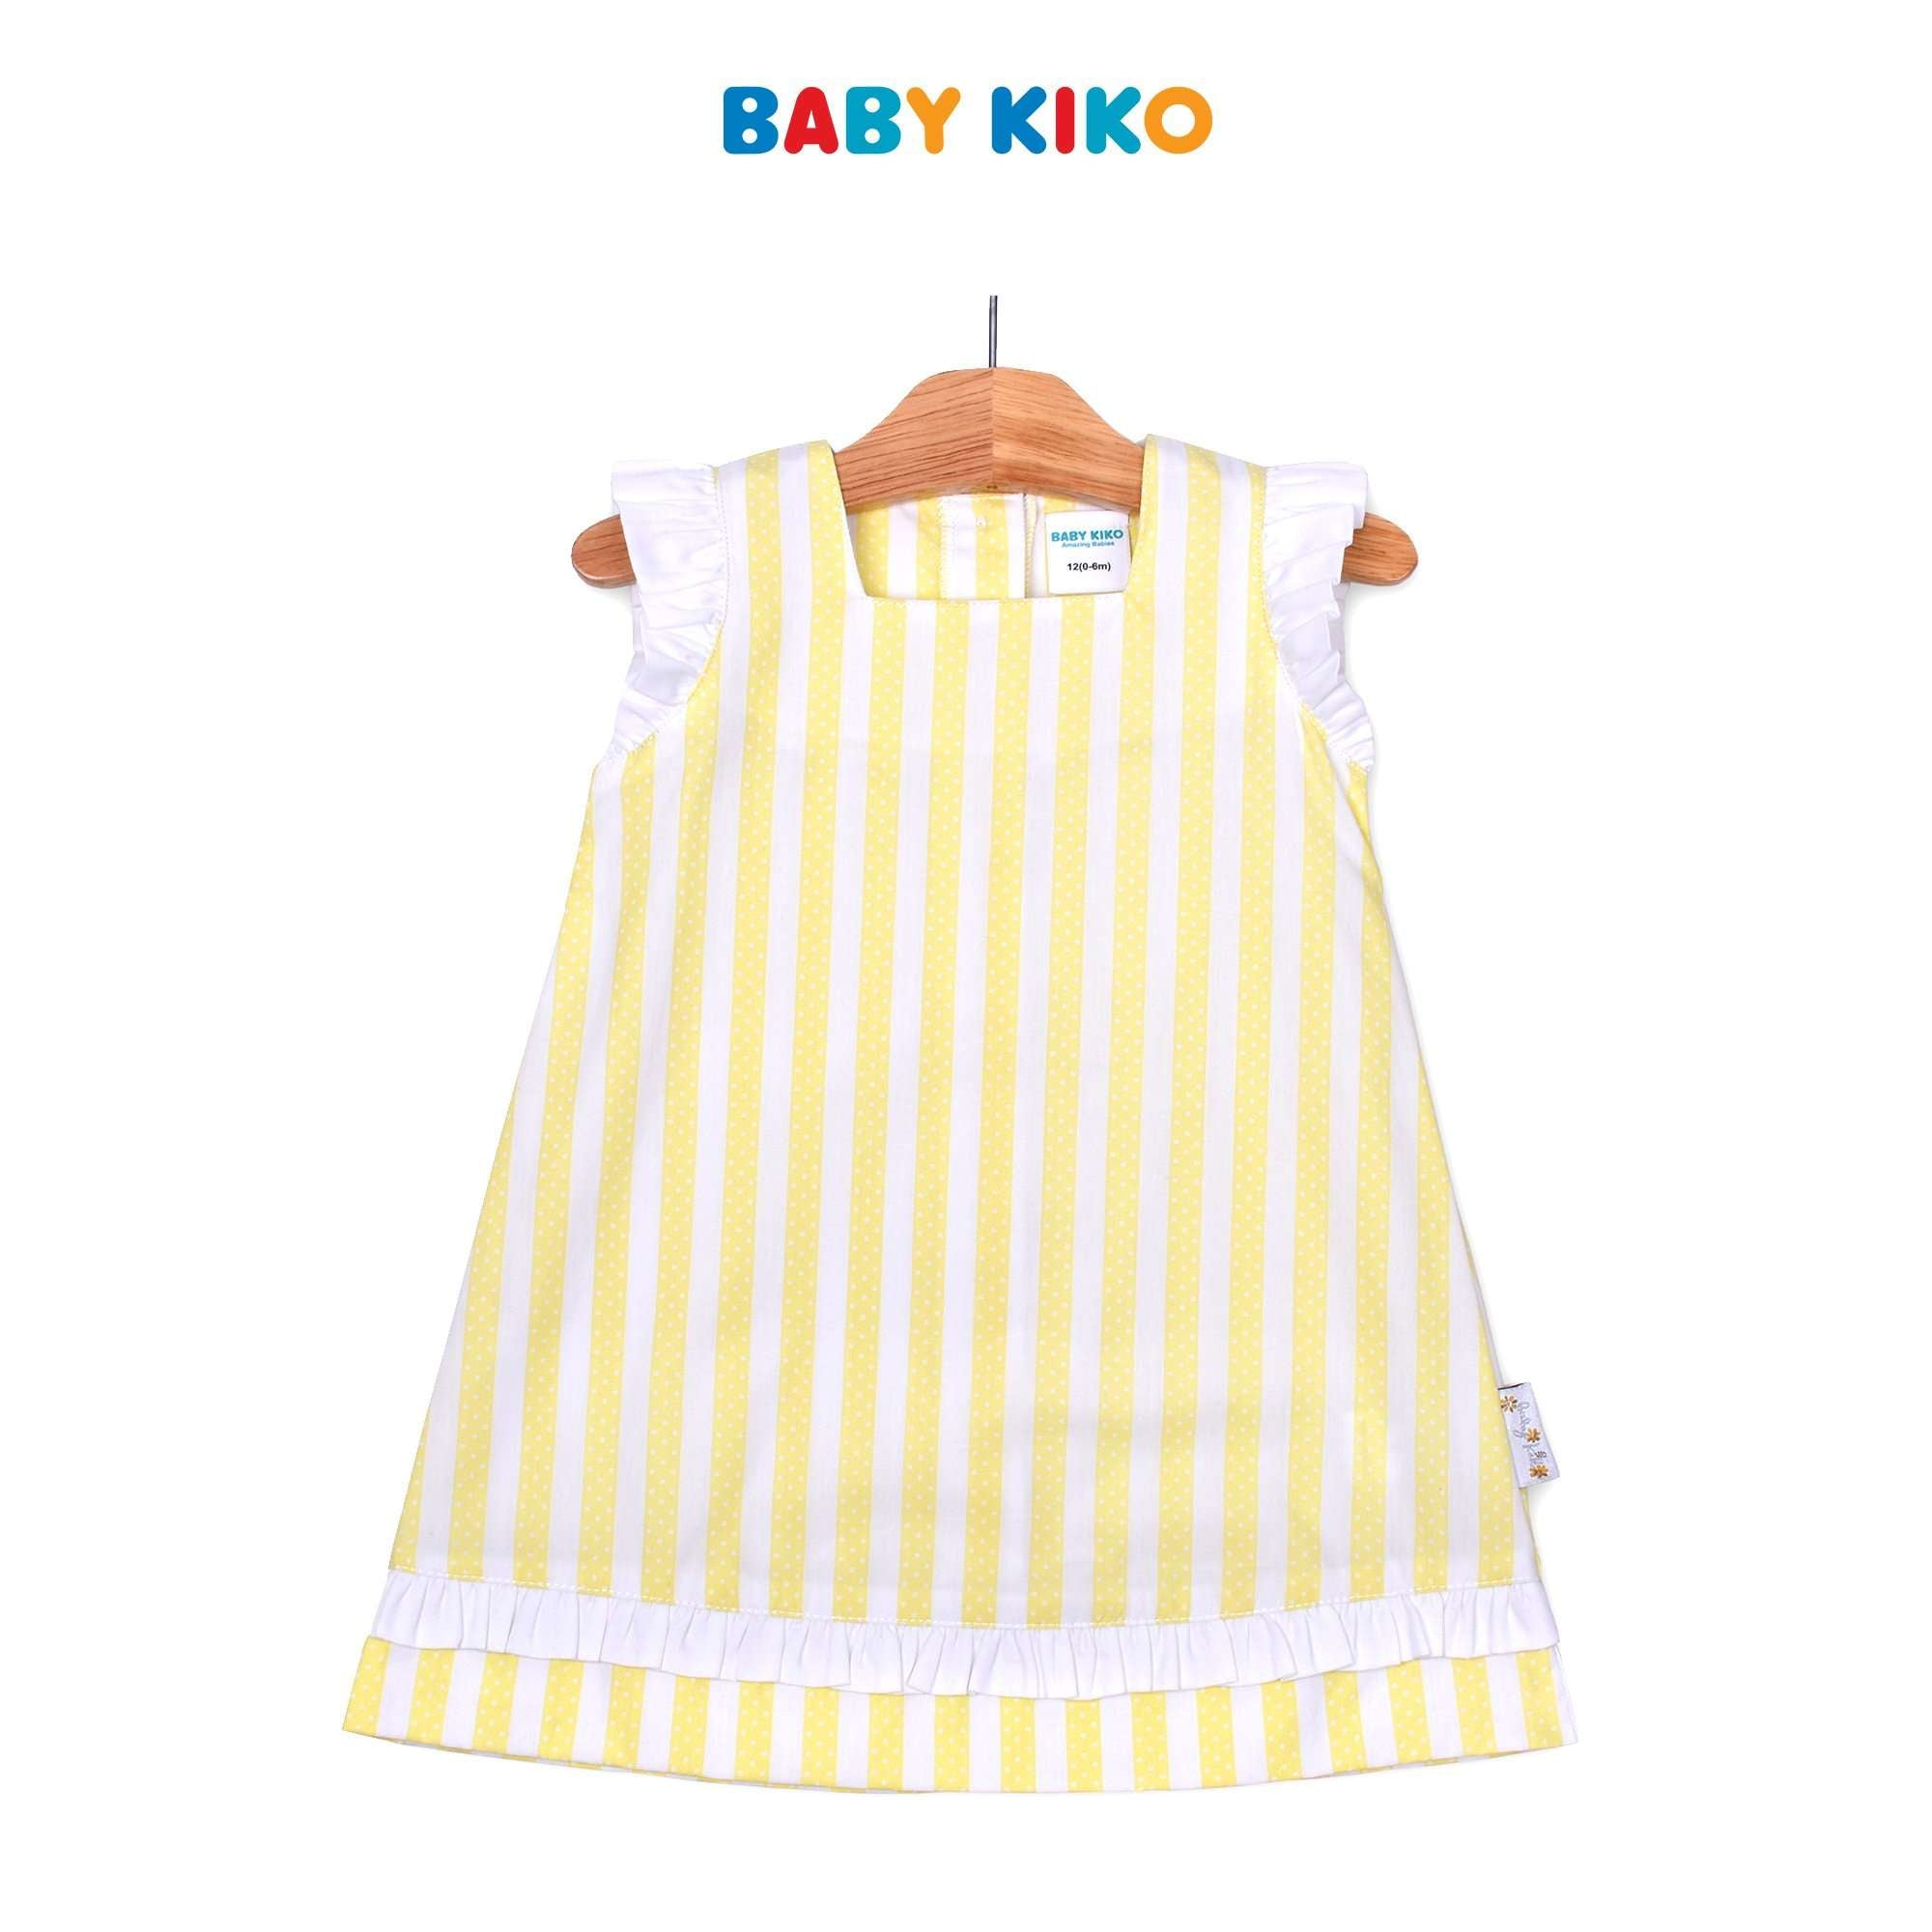 Baby KIKO Baby Girl Sleeveless Dress- Lemonade Stripe 310213-314 : Buy Baby KIKO online at CMG.MY